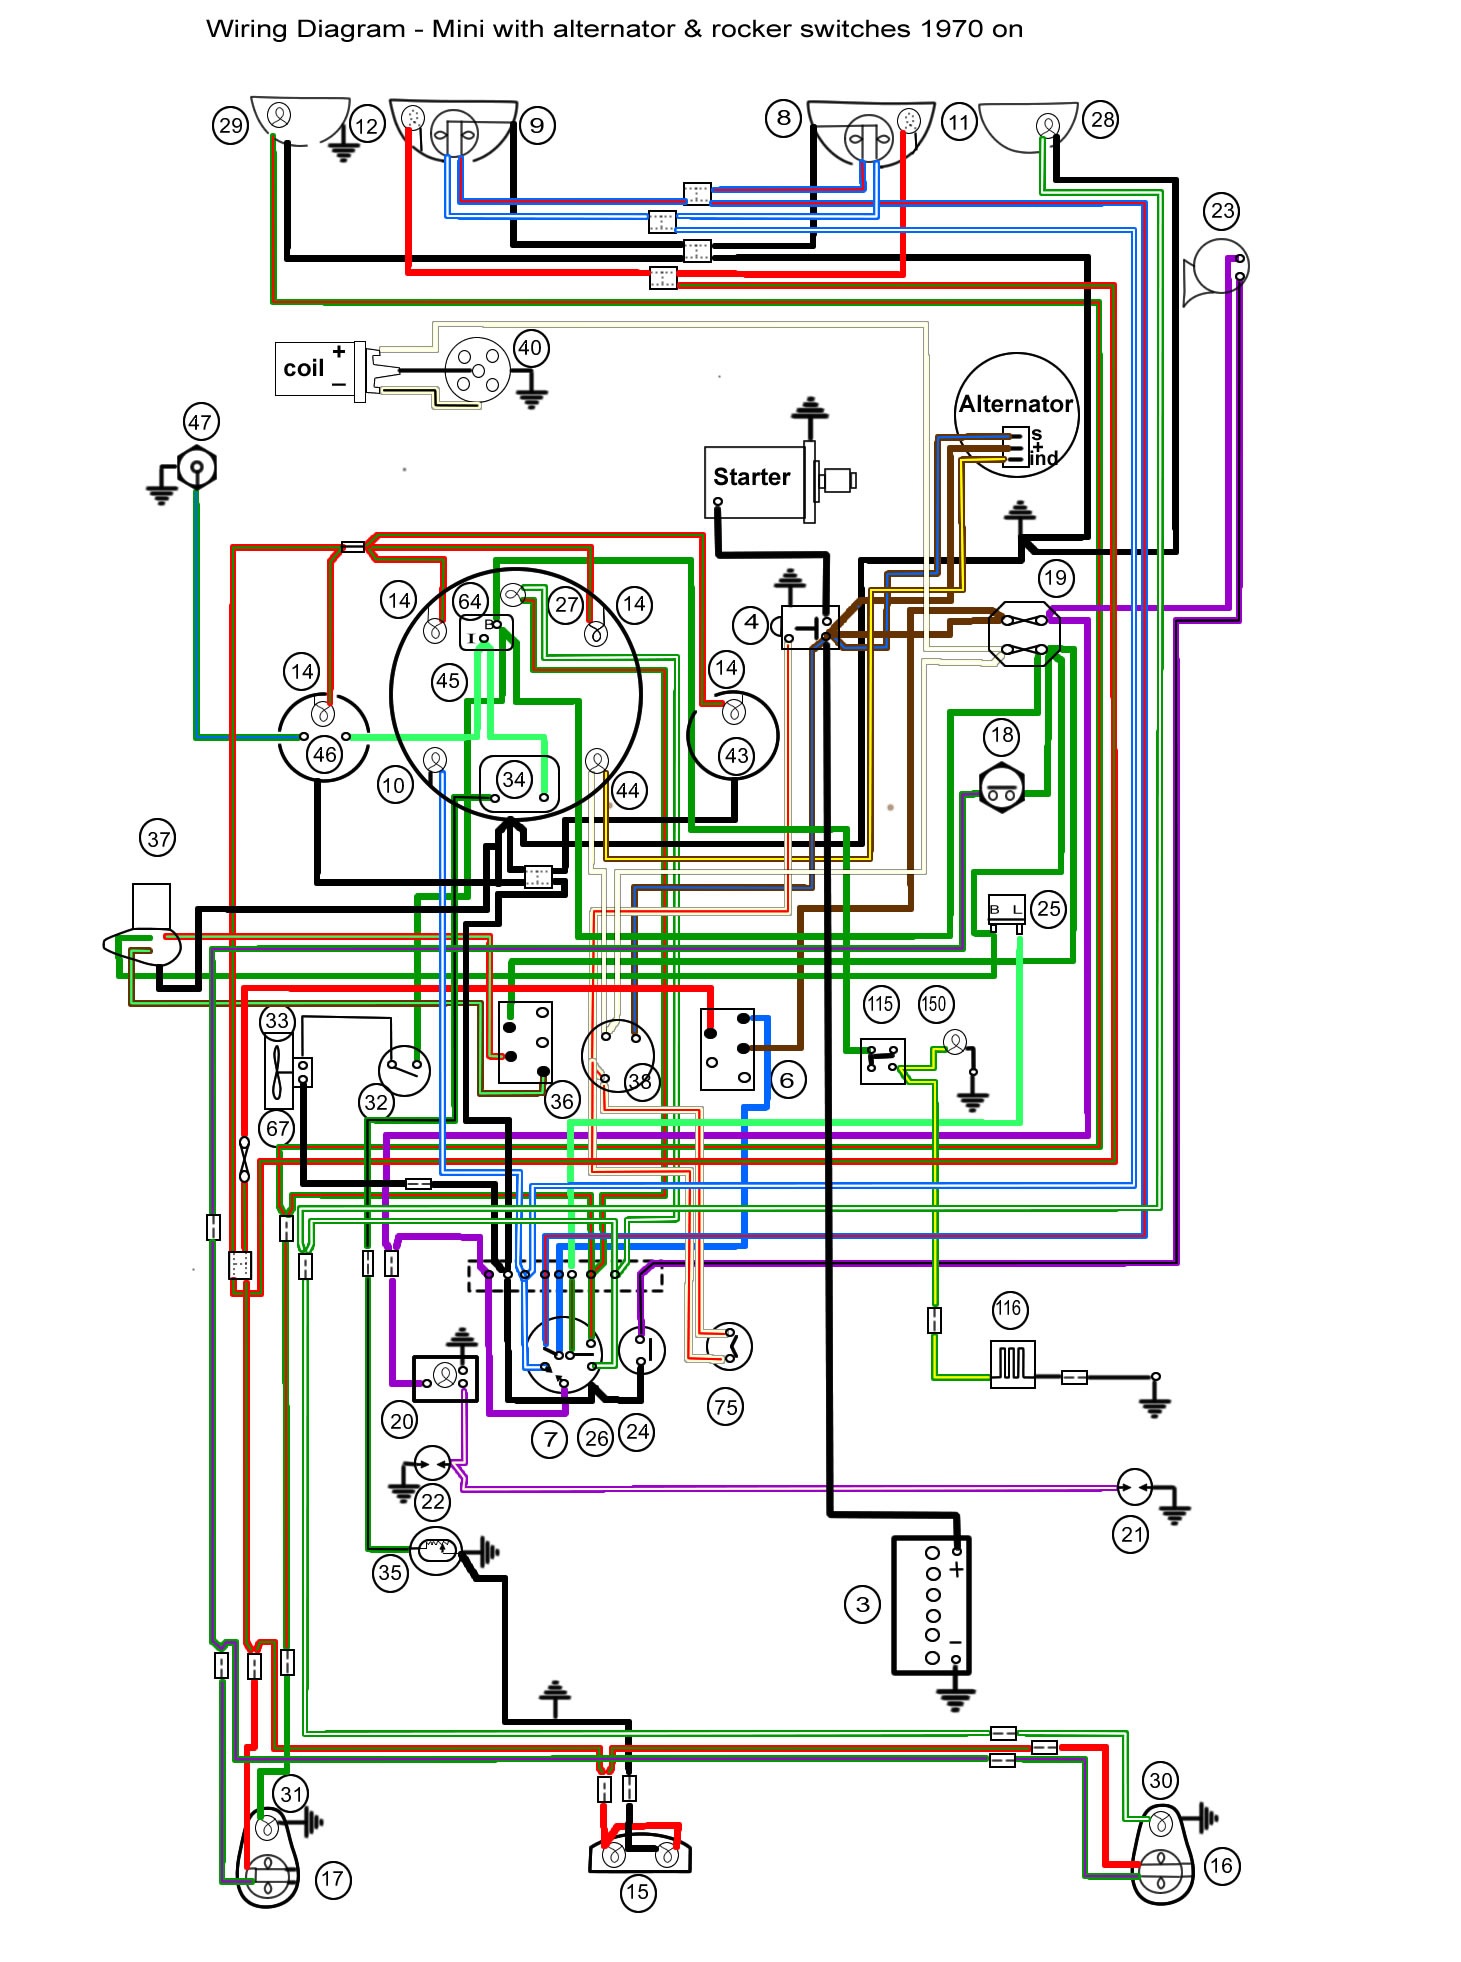 mini wiring diagram mini wiring diagrams electrical colourwiringdiagram mini wiring diagram electrical colourwiringdiagram